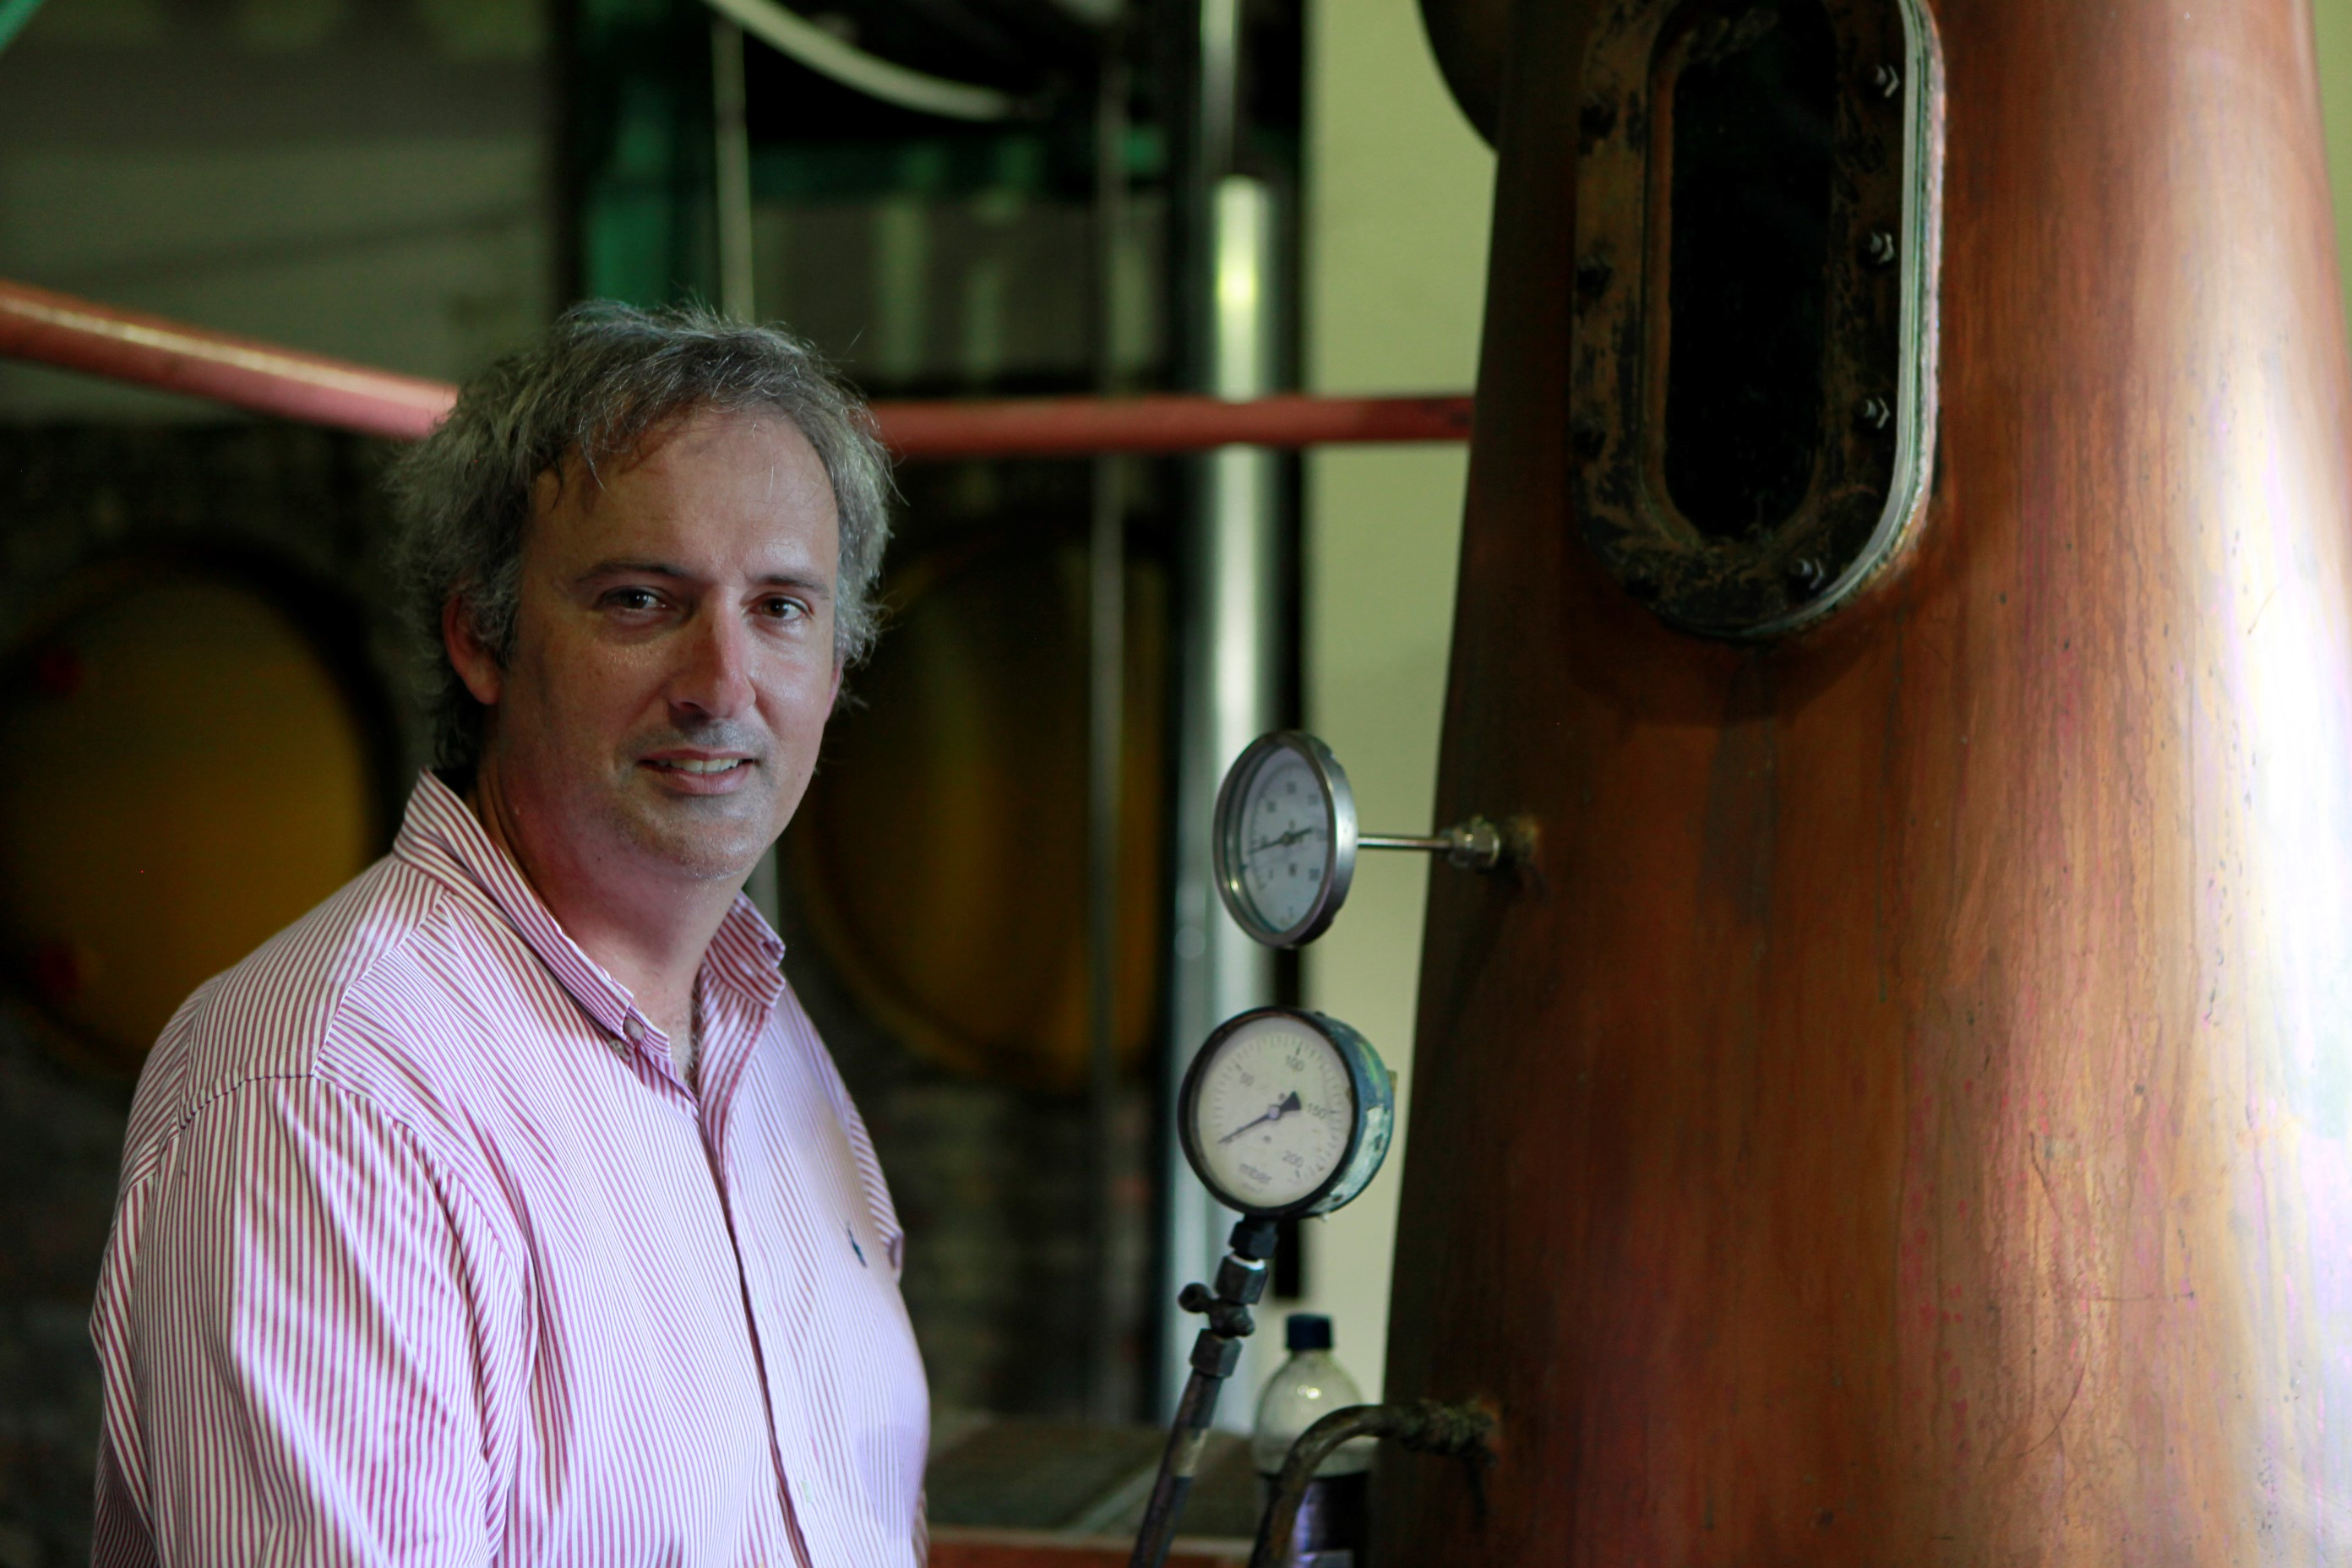 Rum Masterclass with Richard Seale – SOLD OUT